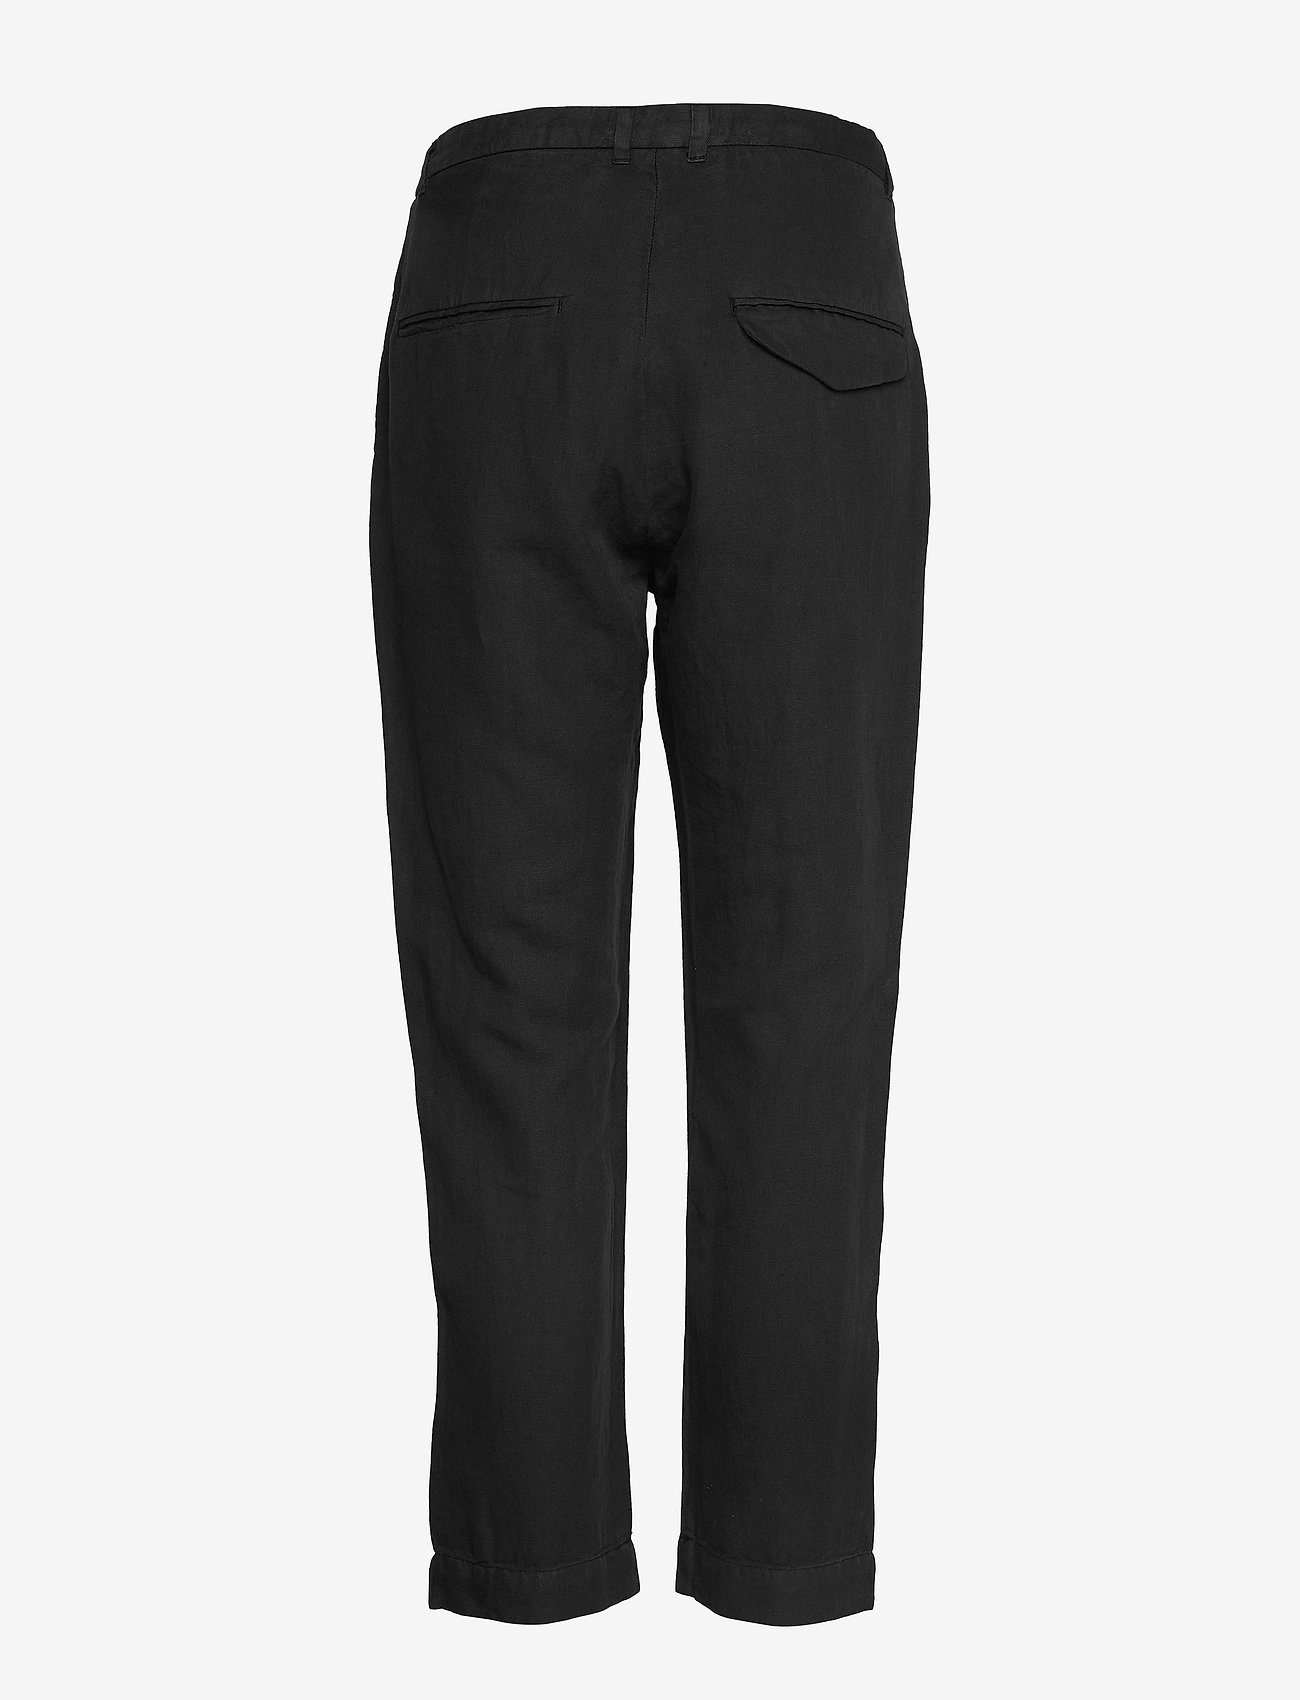 Krissy Edit Trouser   - Hope -  Women's Trousers Cheap